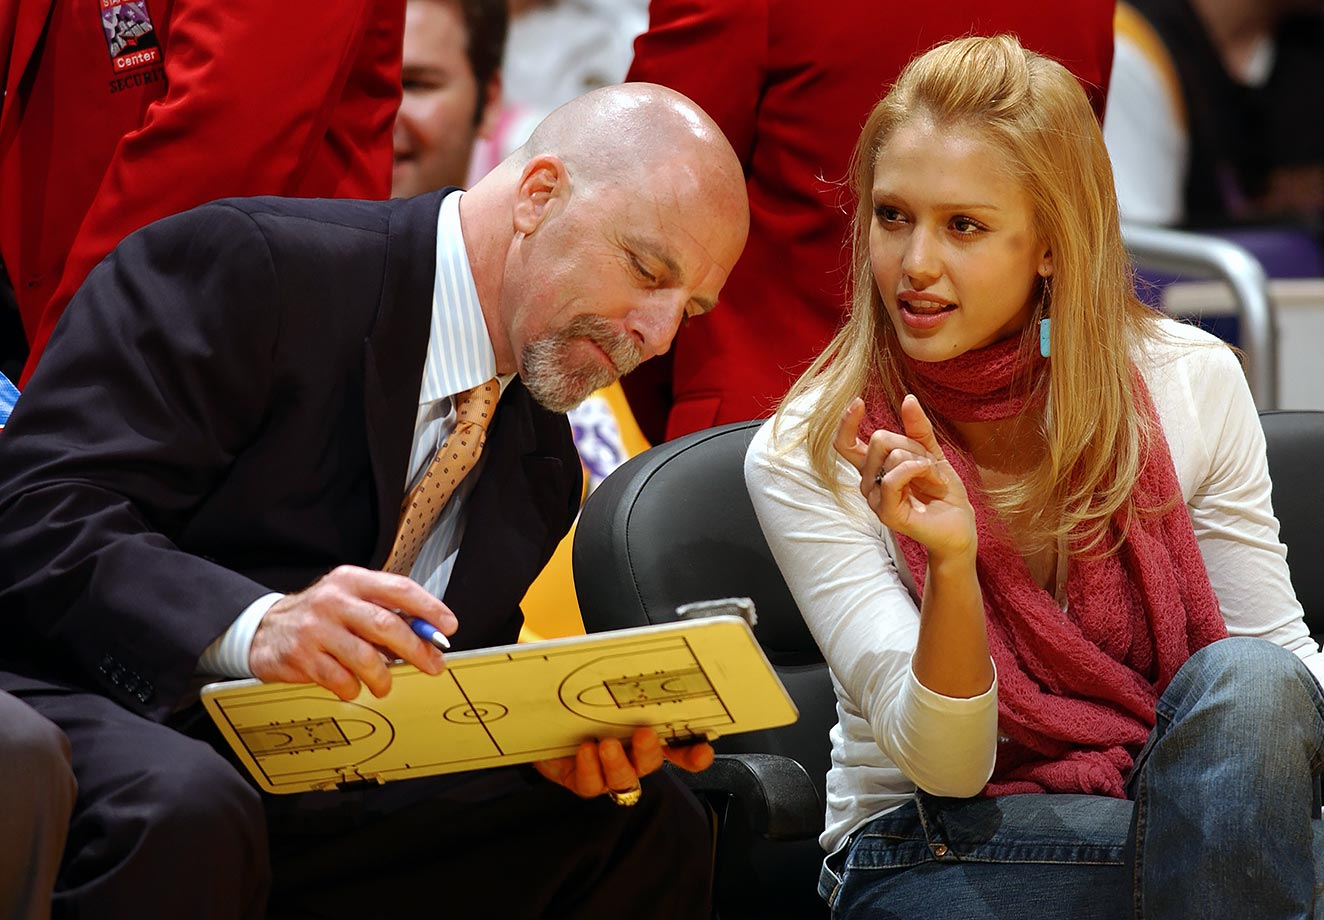 Gary Vitti and Jessica Alba